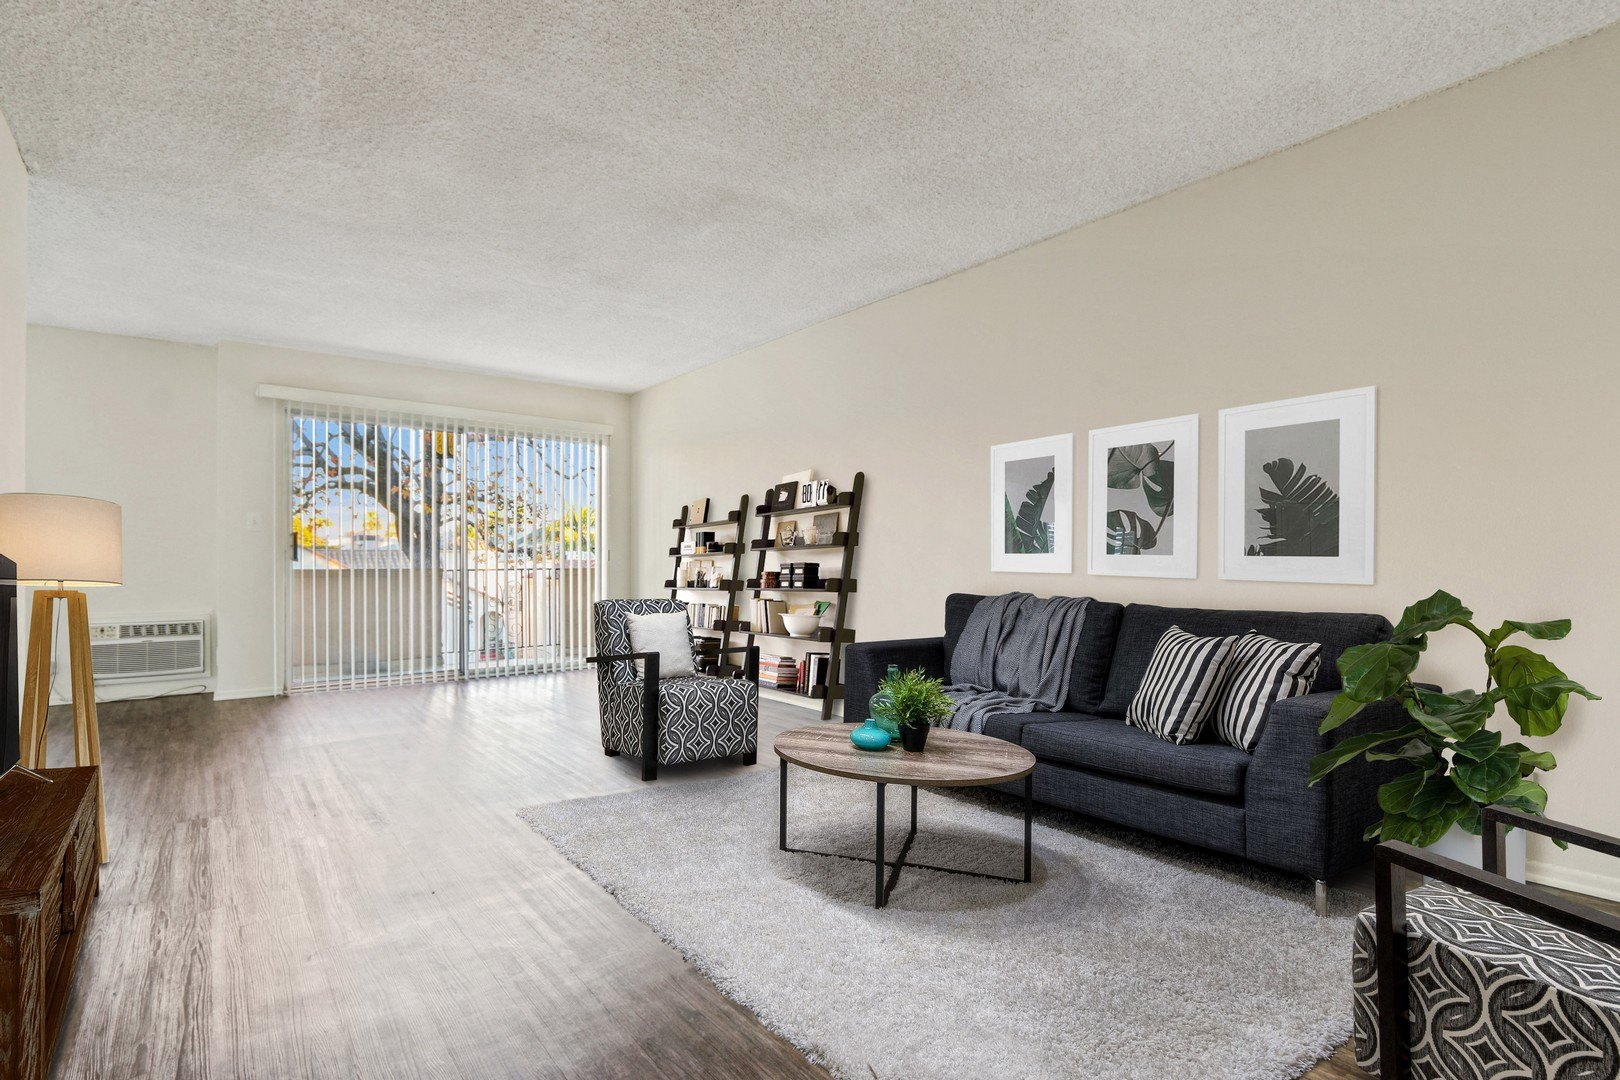 835 S. Wooster St - 1795USD / month